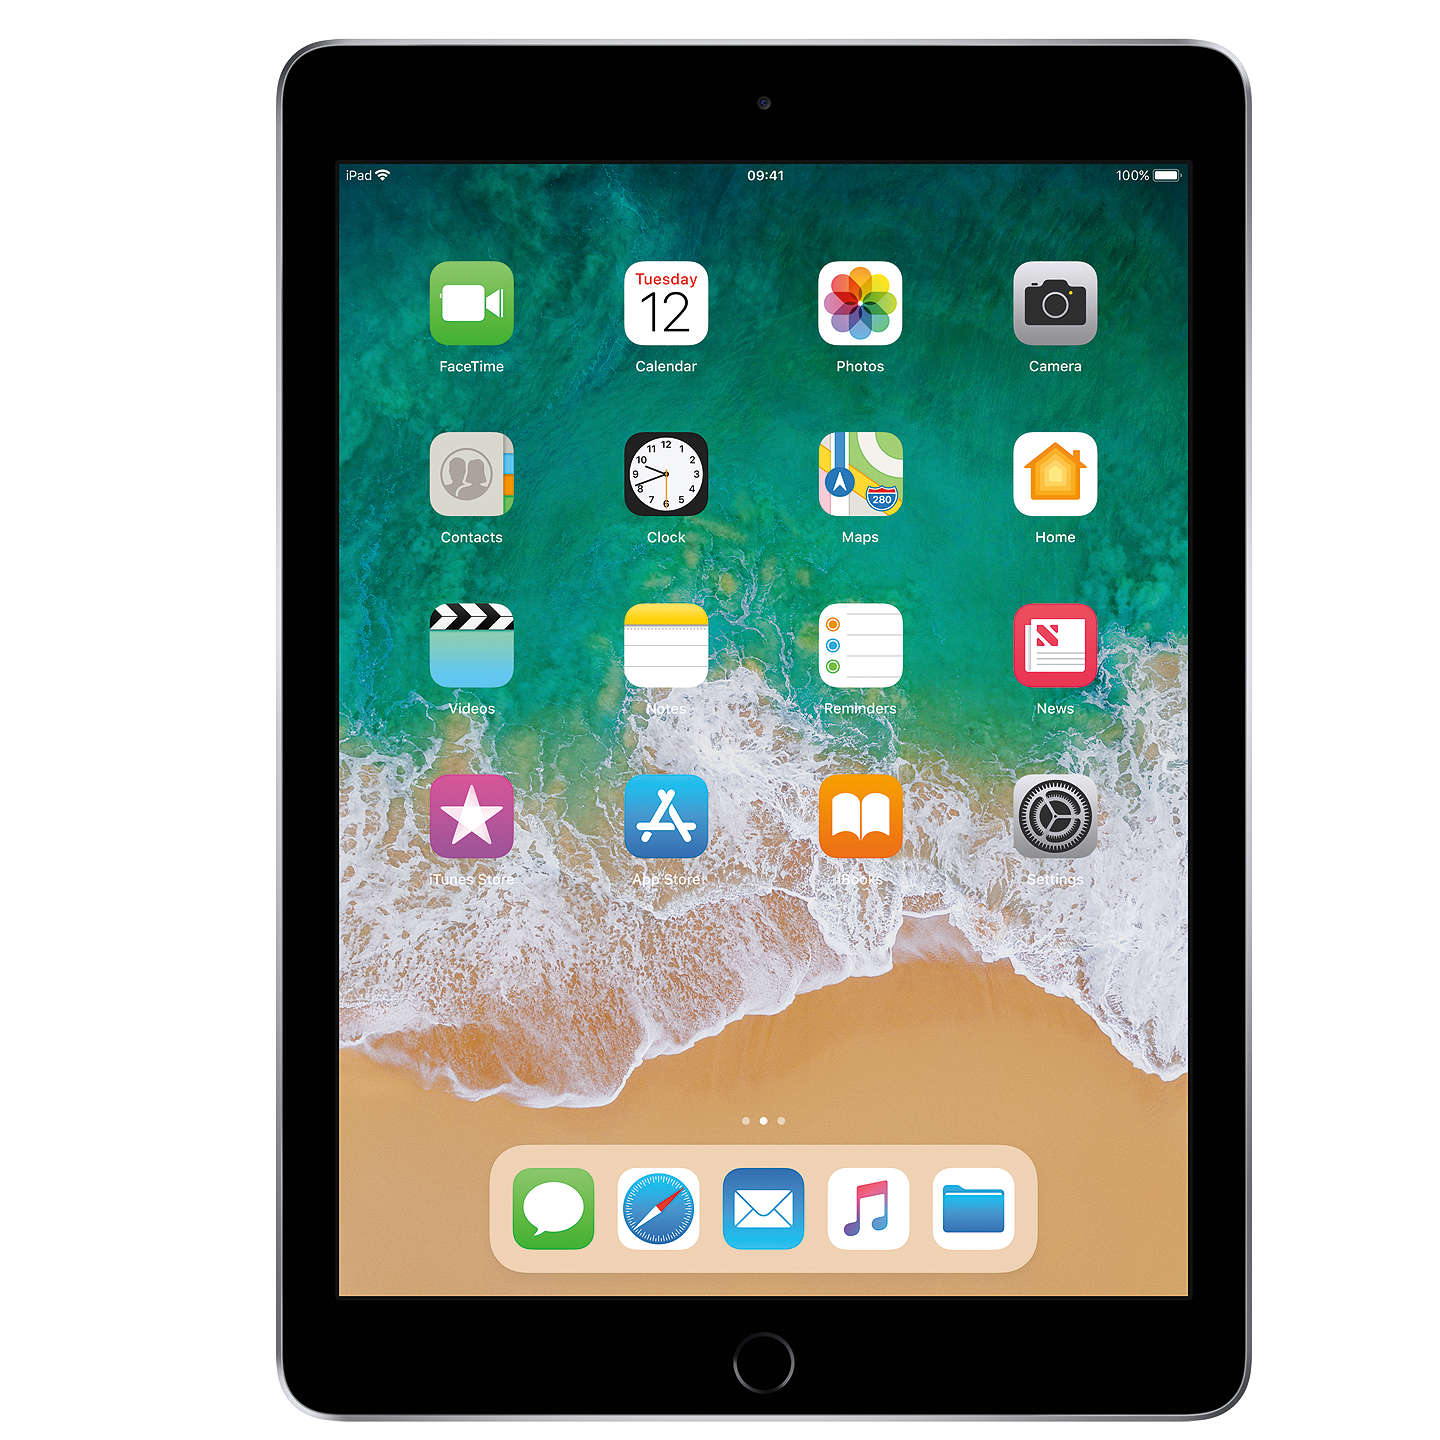 iPad 9.7 (2018) price in Nepal